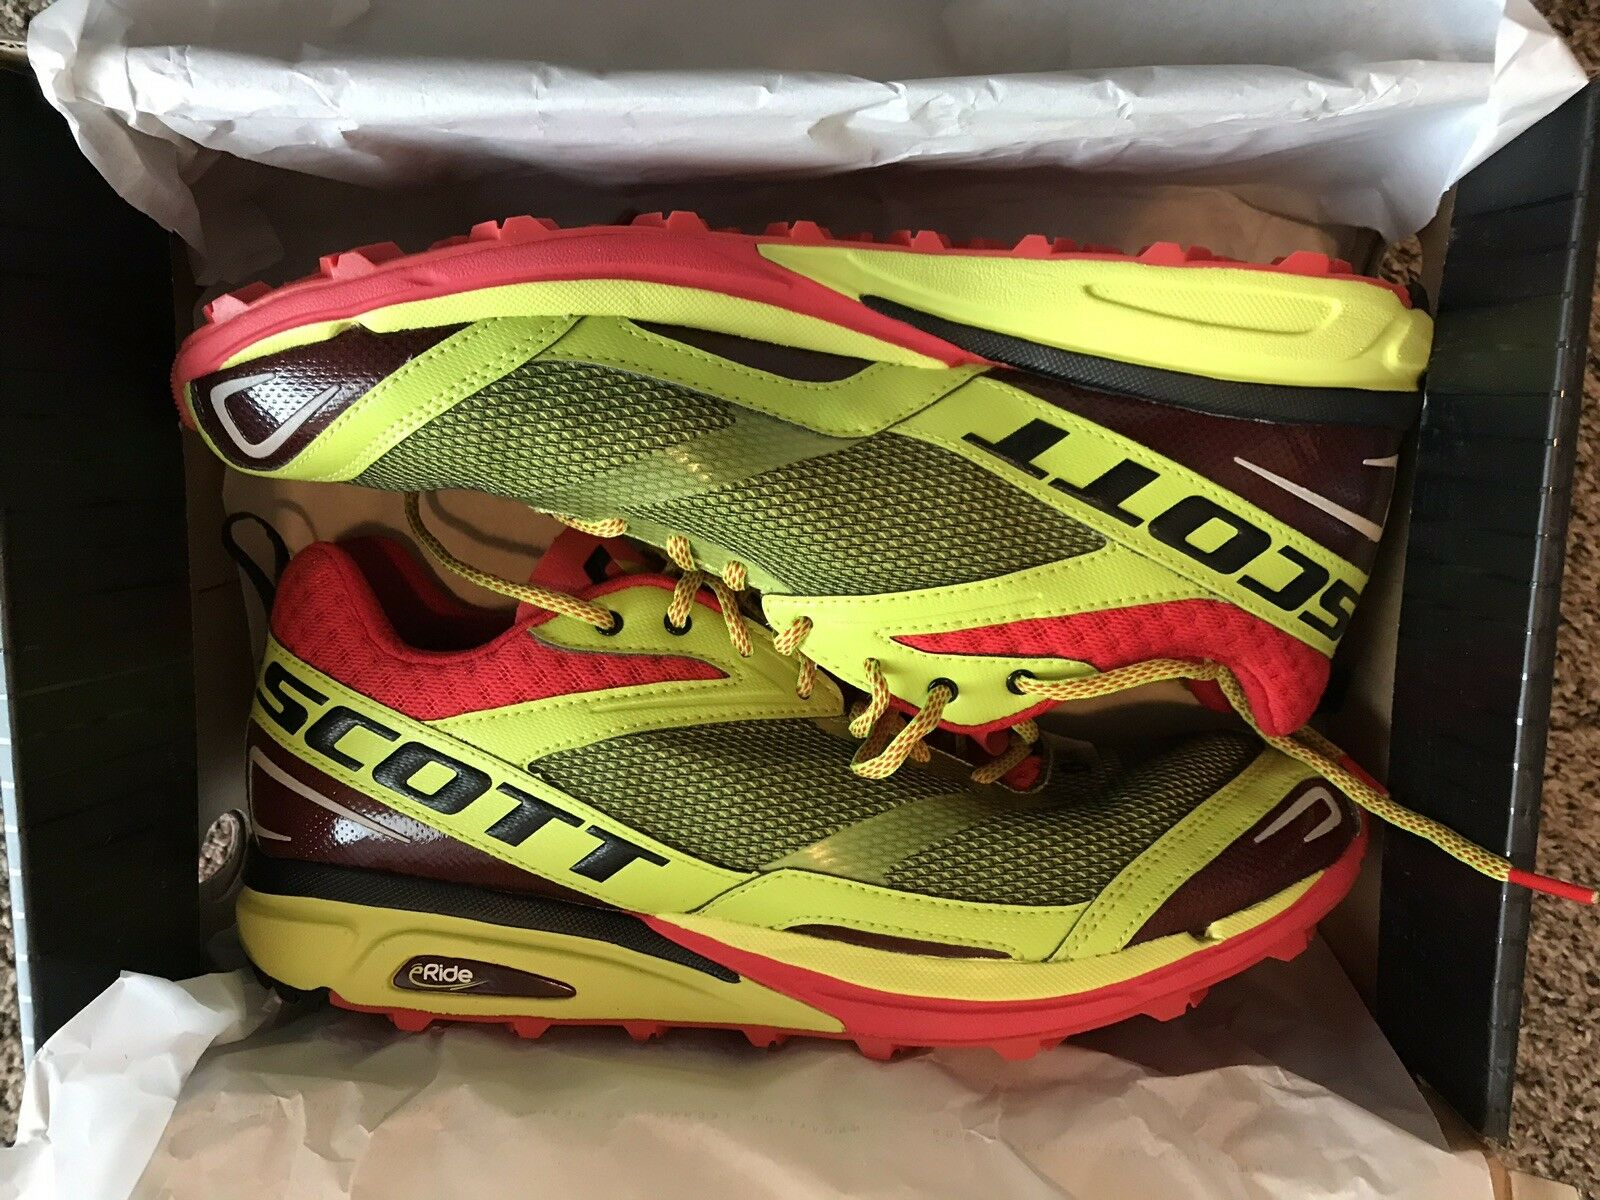 NEW Scott ERide Grip2 Men's Trail Running shoes - Size  12   46 - Lime Green Red